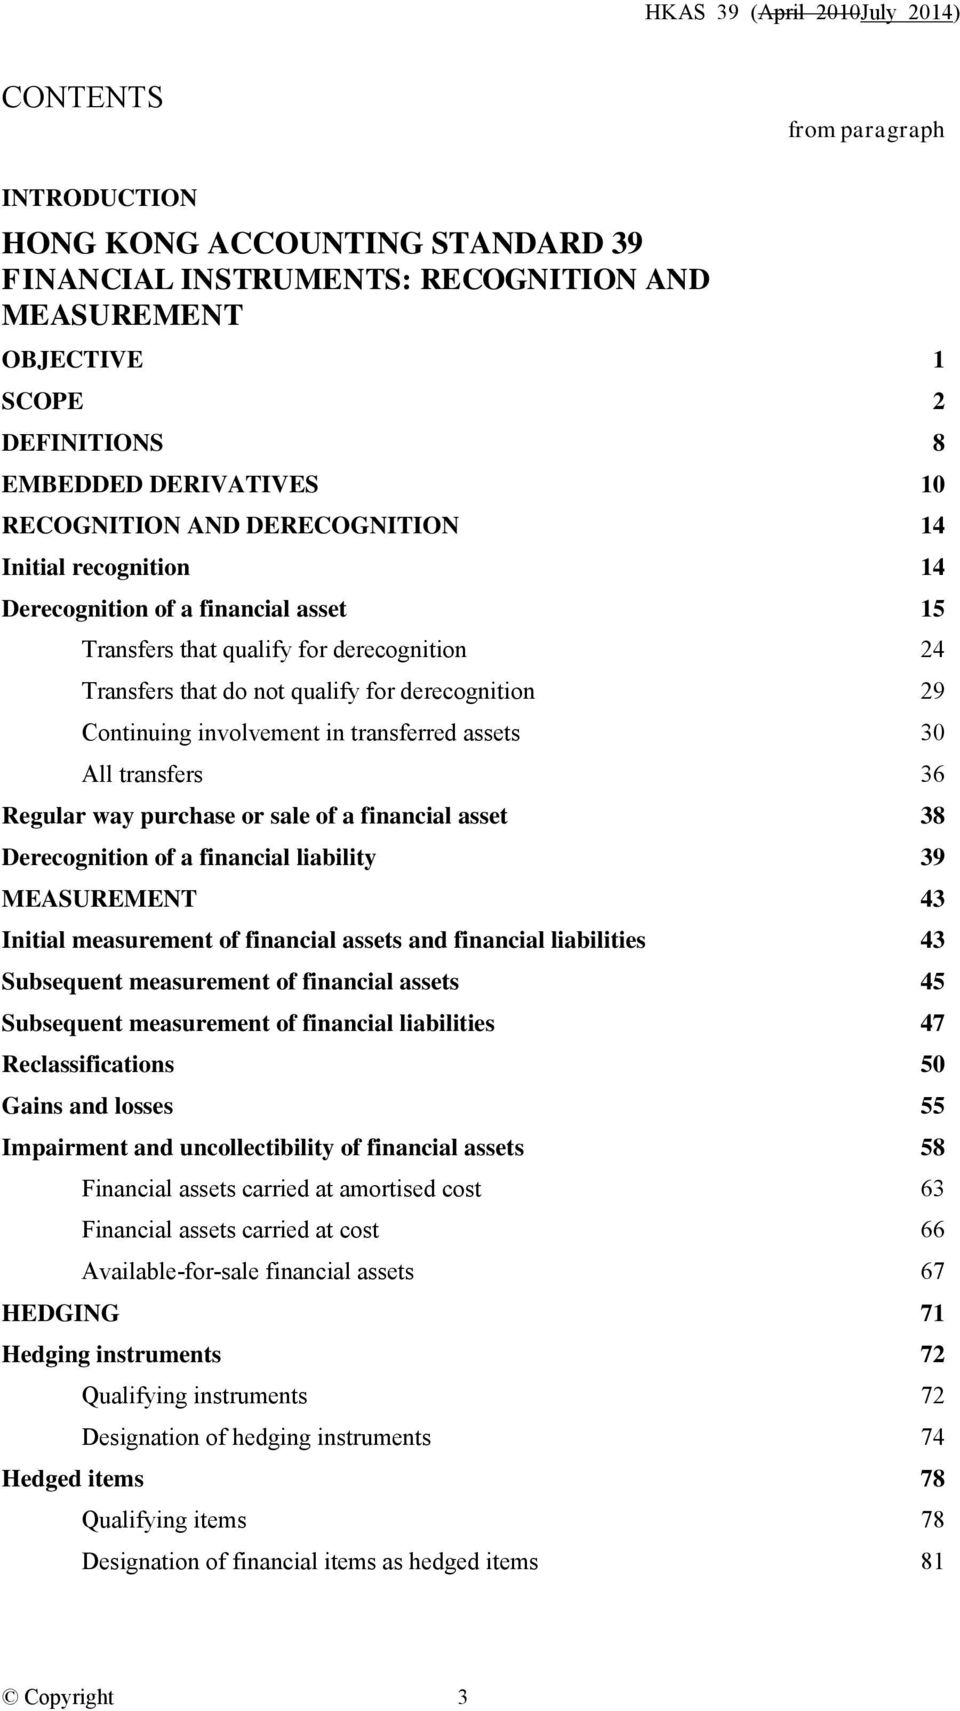 derecognition 29 Continuing involvement in transferred assets 30 All transfers 36 Regular way purchase or sale of a financial asset 38 Derecognition of a financial liability 39 MEASUREMENT 43 Initial